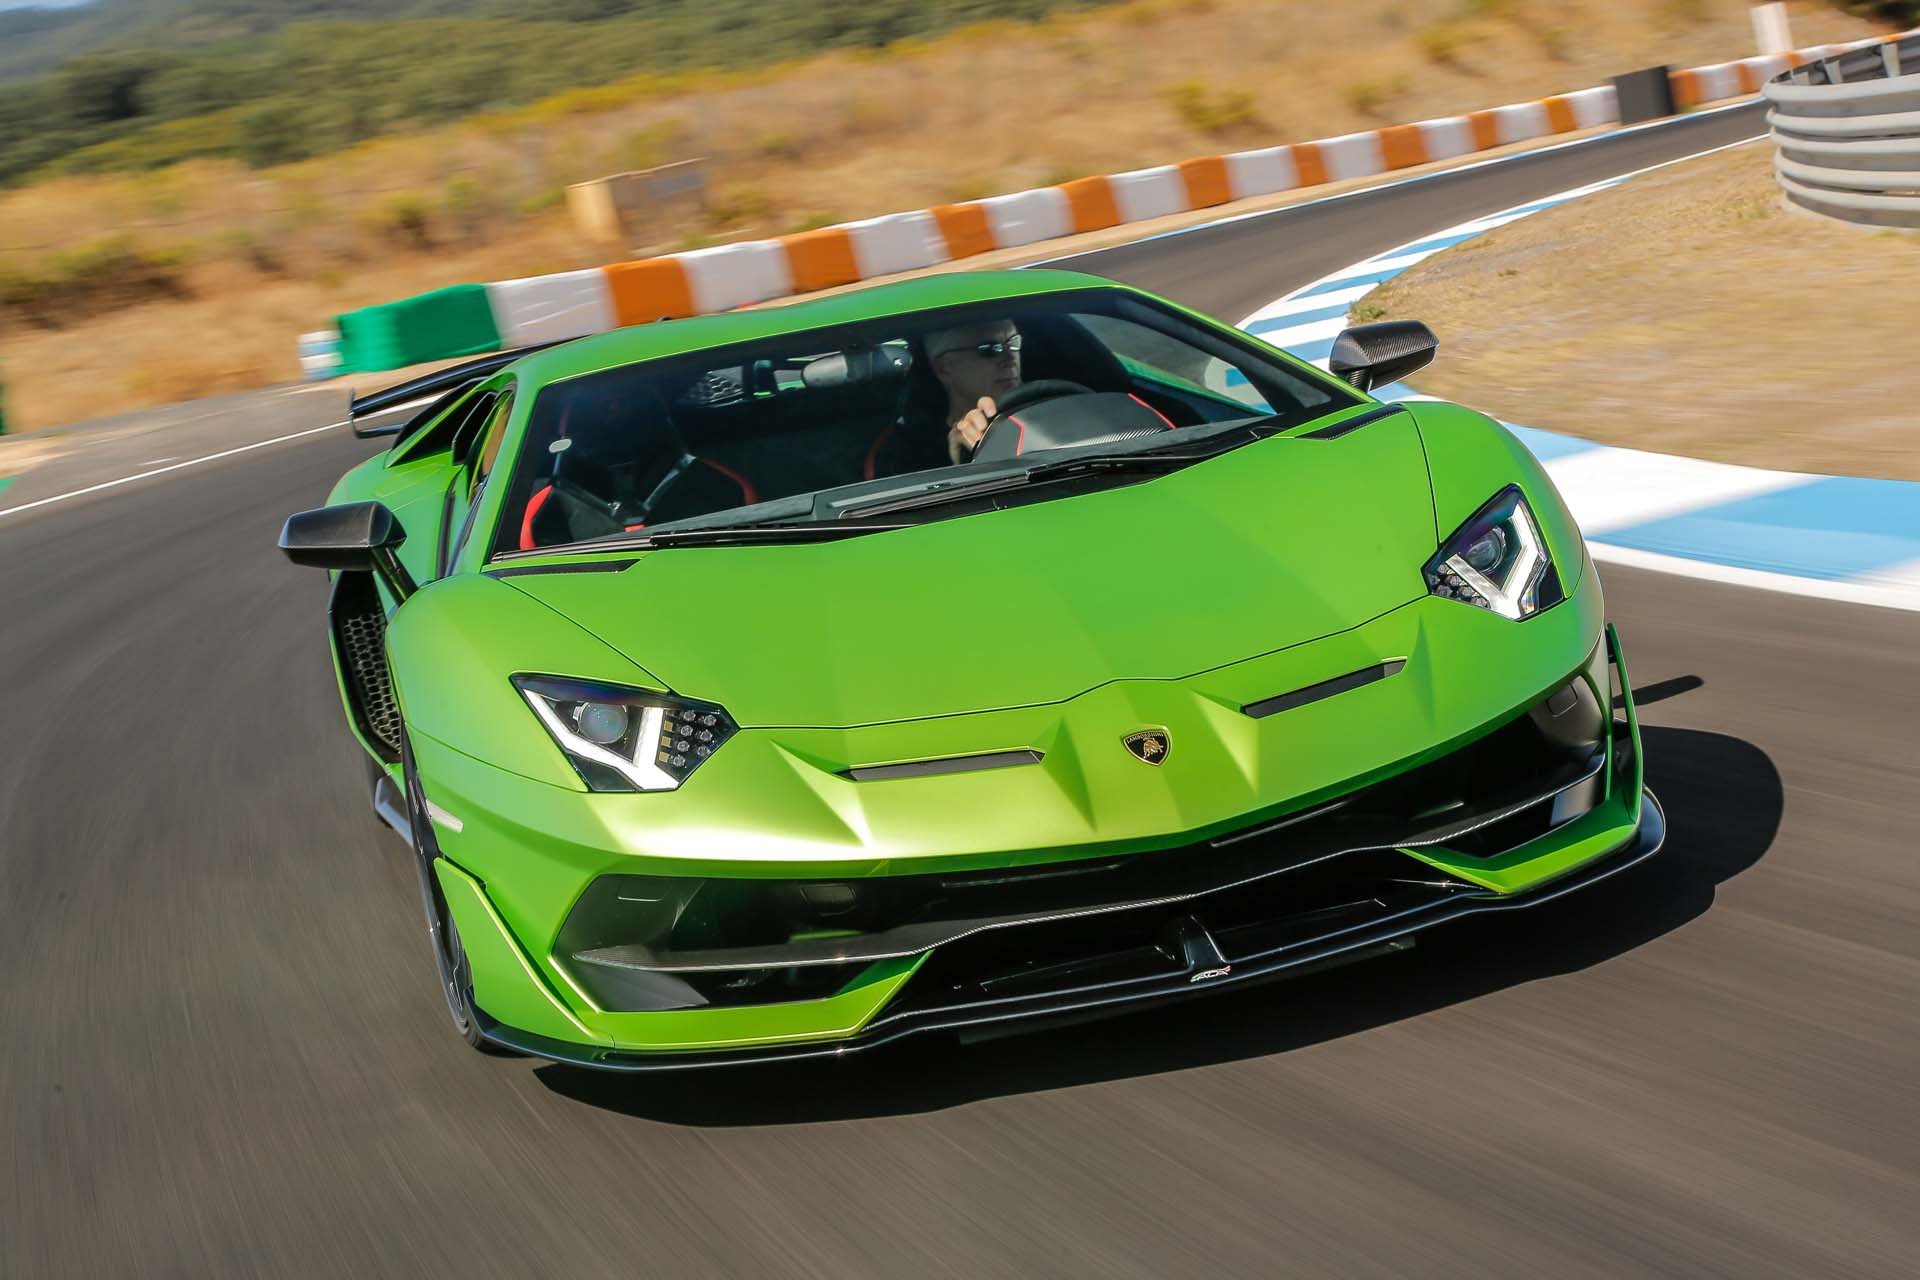 2019 Lamborghini Aventador Svj First Drive Review The Life You Save